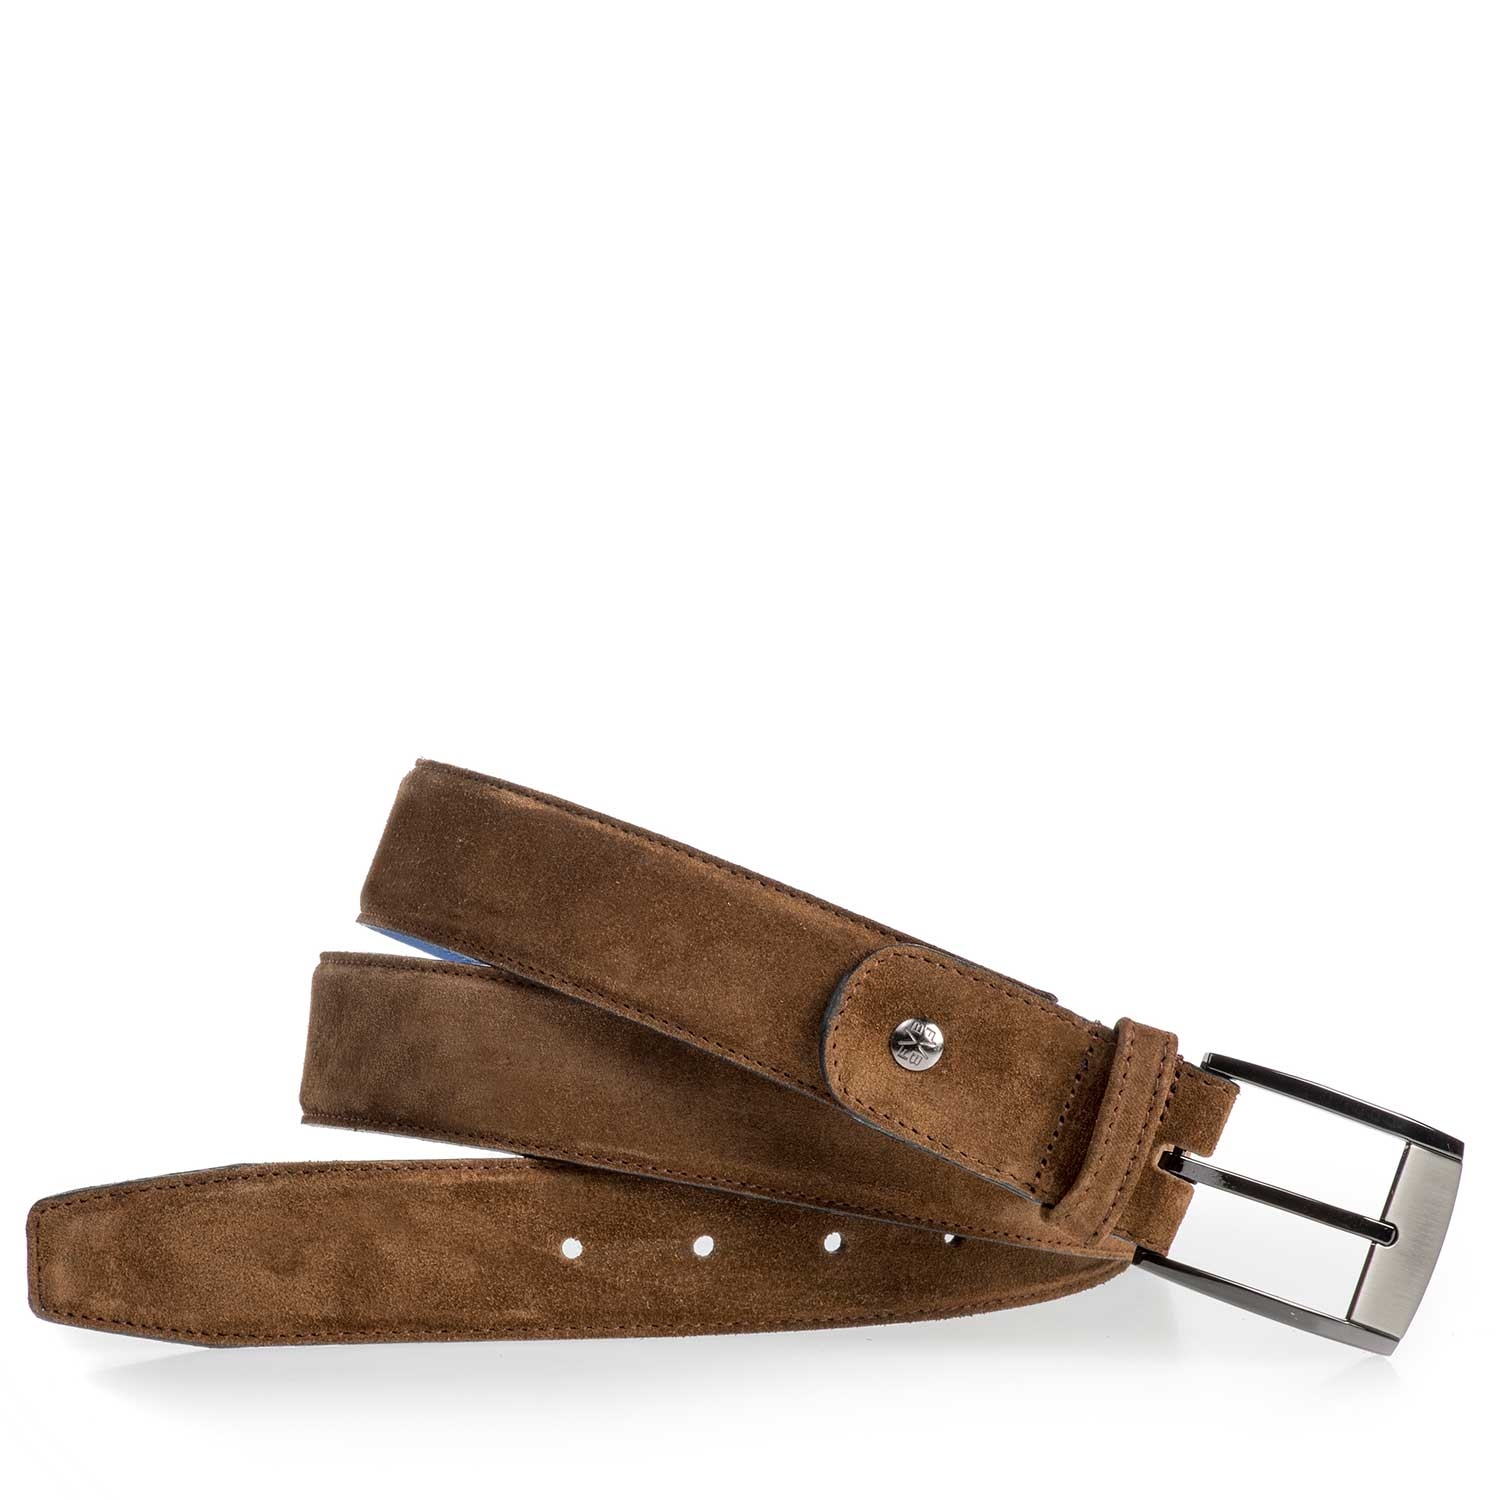 75183/05 - Brown suede leather belt